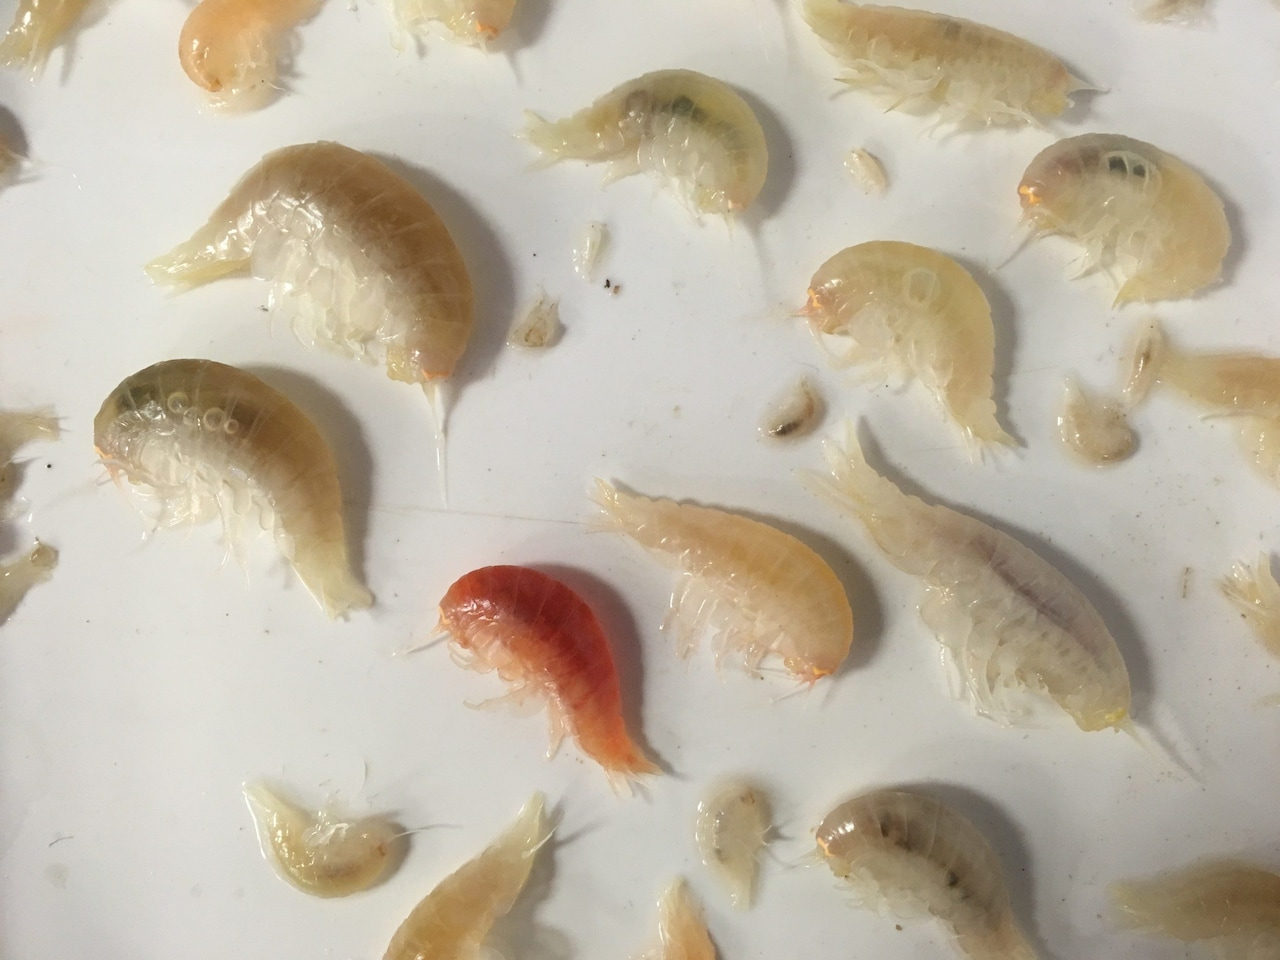 Amphipods from Mariana Trench - deep ocean plastic